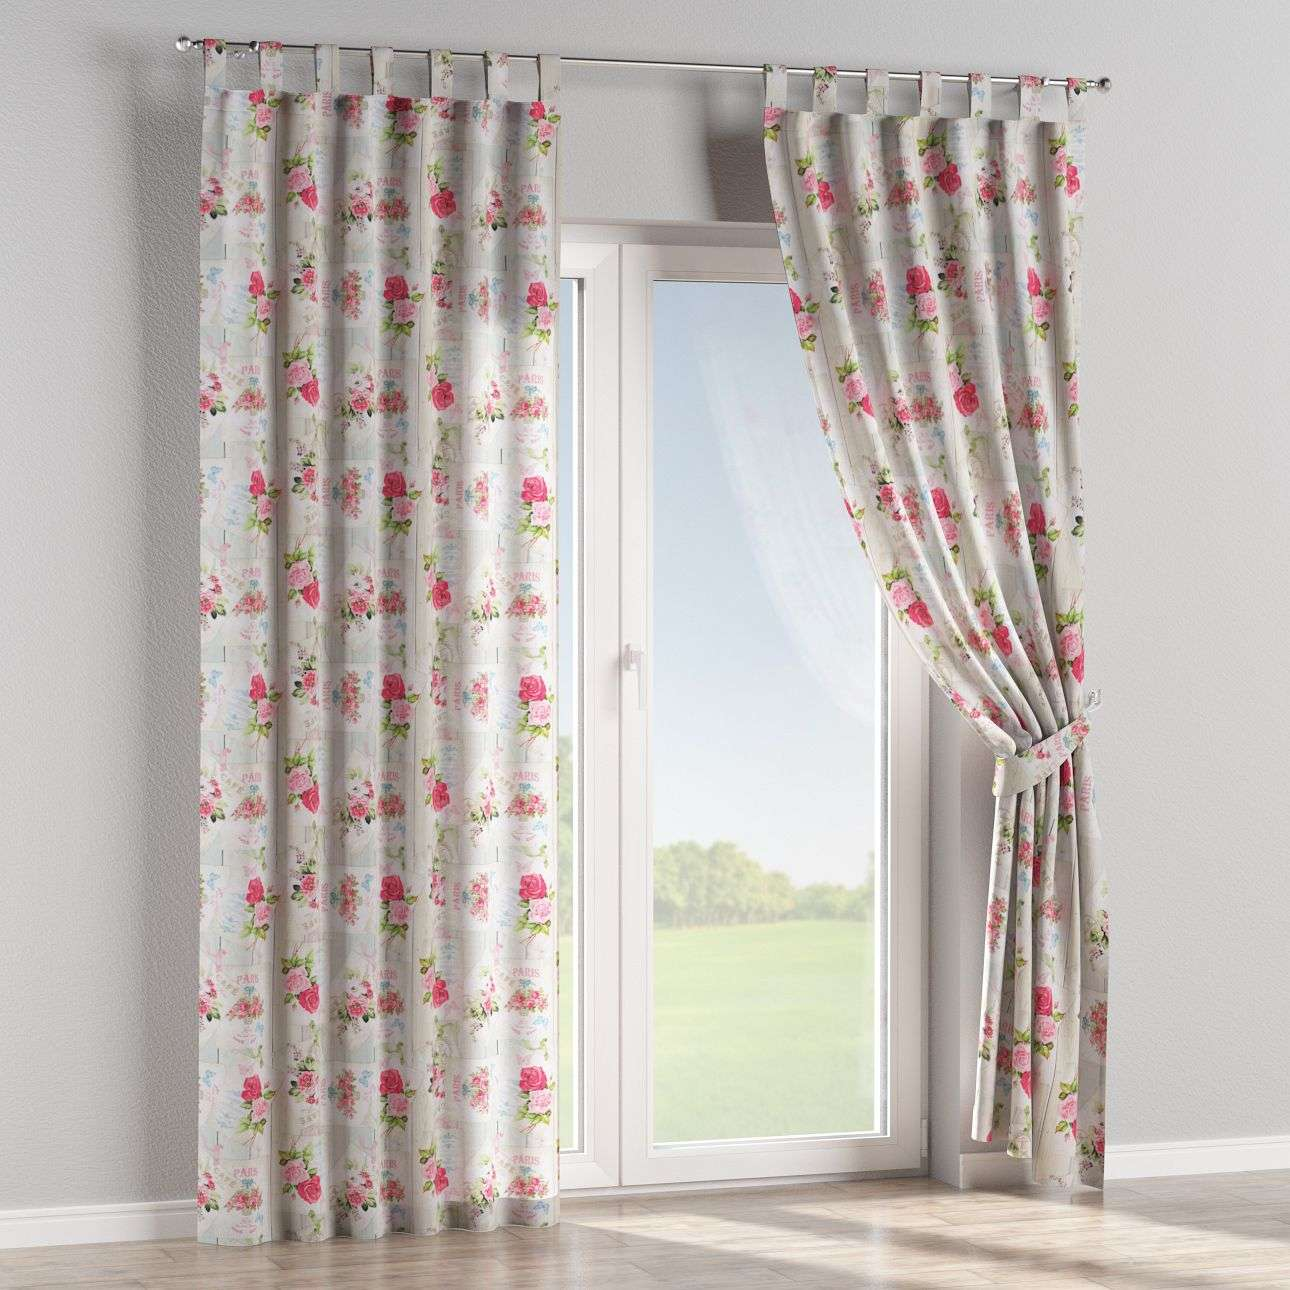 Tab top curtains in collection Ashley, fabric: 140-19